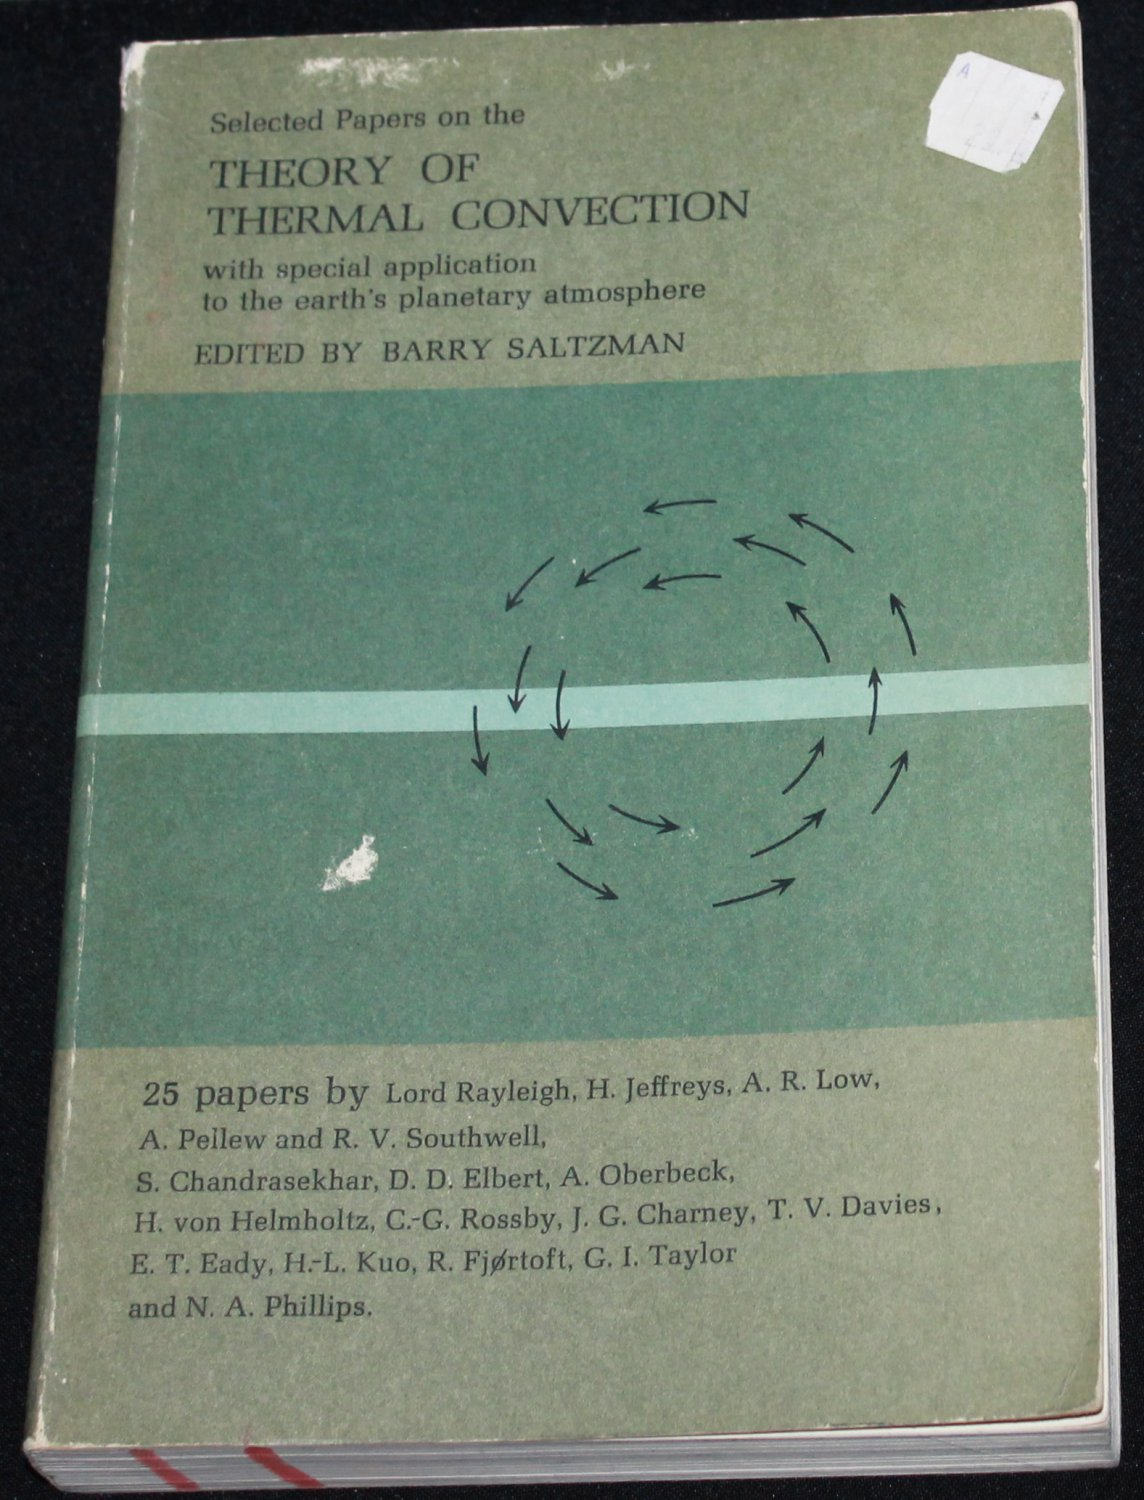 Selected Papers on the Theory of Thermal Convection book science weather atmosphere atmospheric book